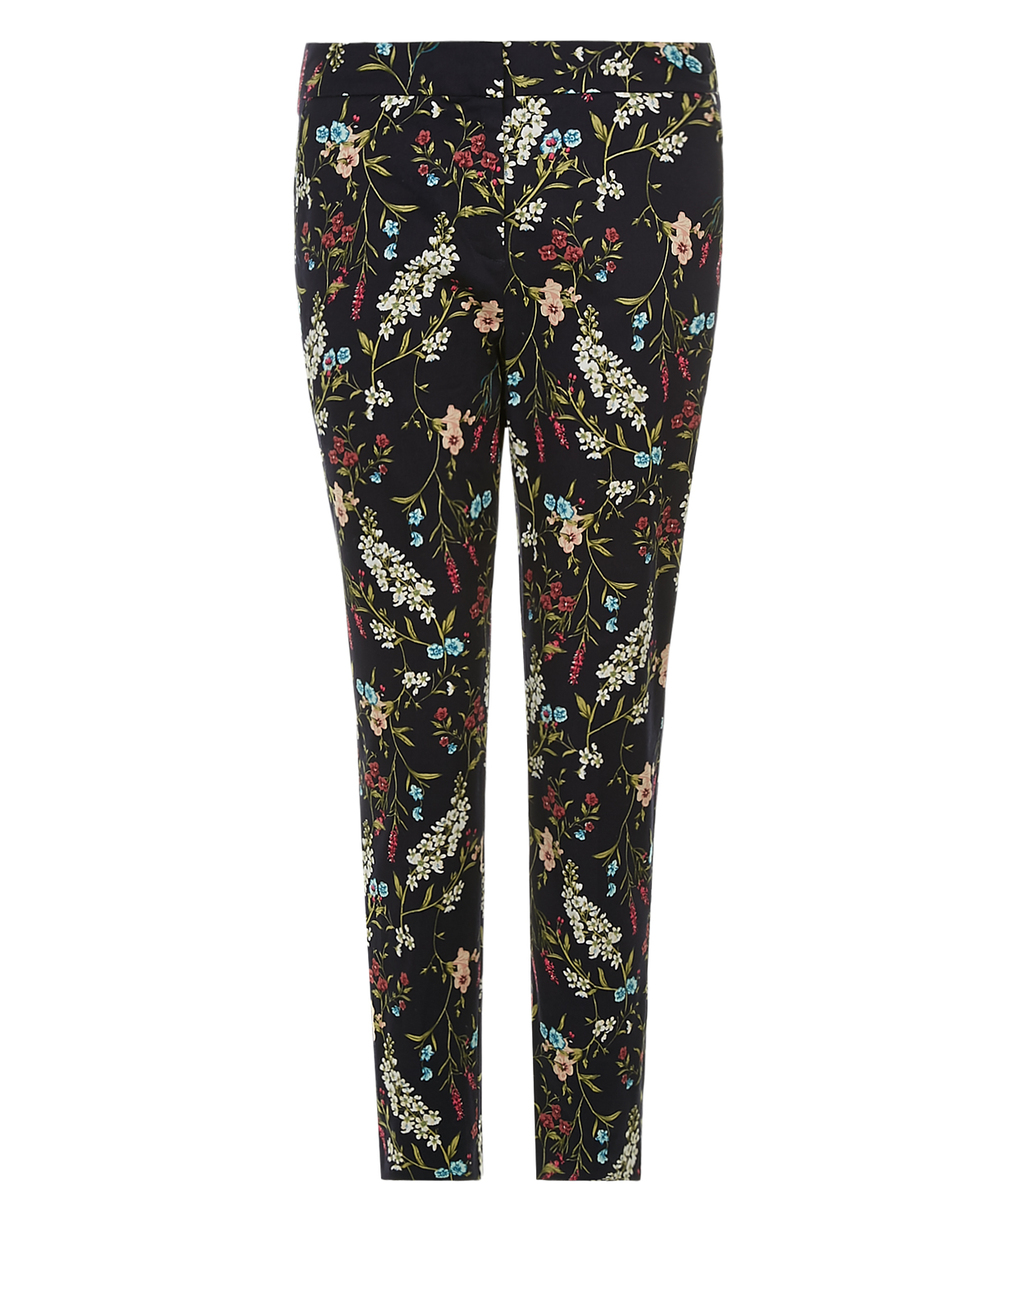 Sian Printed Trouser - length: standard; waist: mid/regular rise; secondary colour: burgundy; predominant colour: black; occasions: casual, creative work; fibres: cotton - stretch; fit: slim leg; pattern type: fabric; pattern: florals; texture group: woven light midweight; style: standard; pattern size: big & busy (bottom); multicoloured: multicoloured; season: s/s 2016; wardrobe: highlight